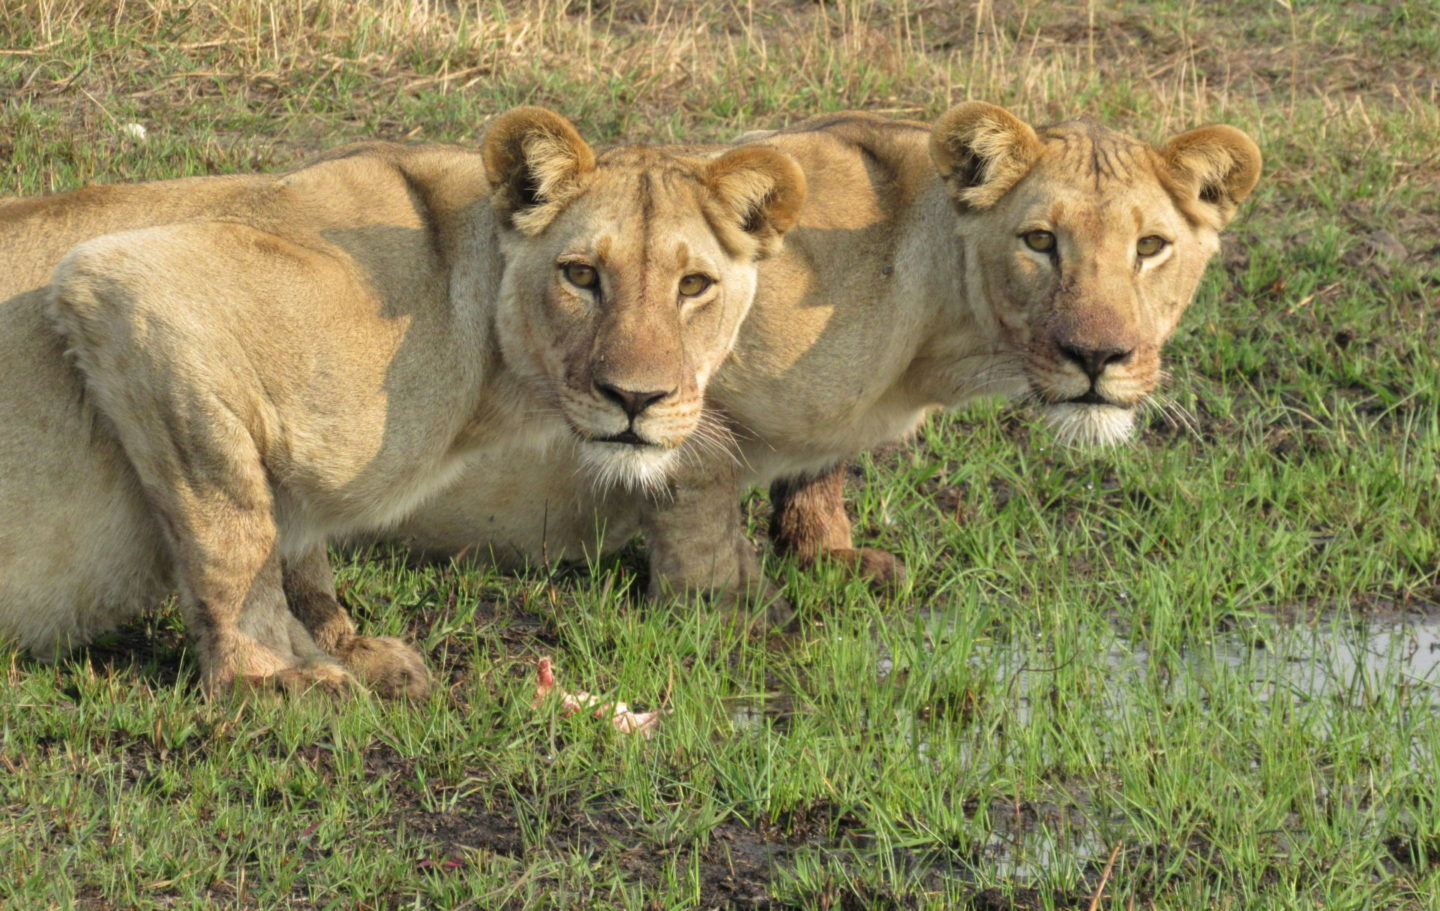 CLAWS Conservancy - Secharo and Sister